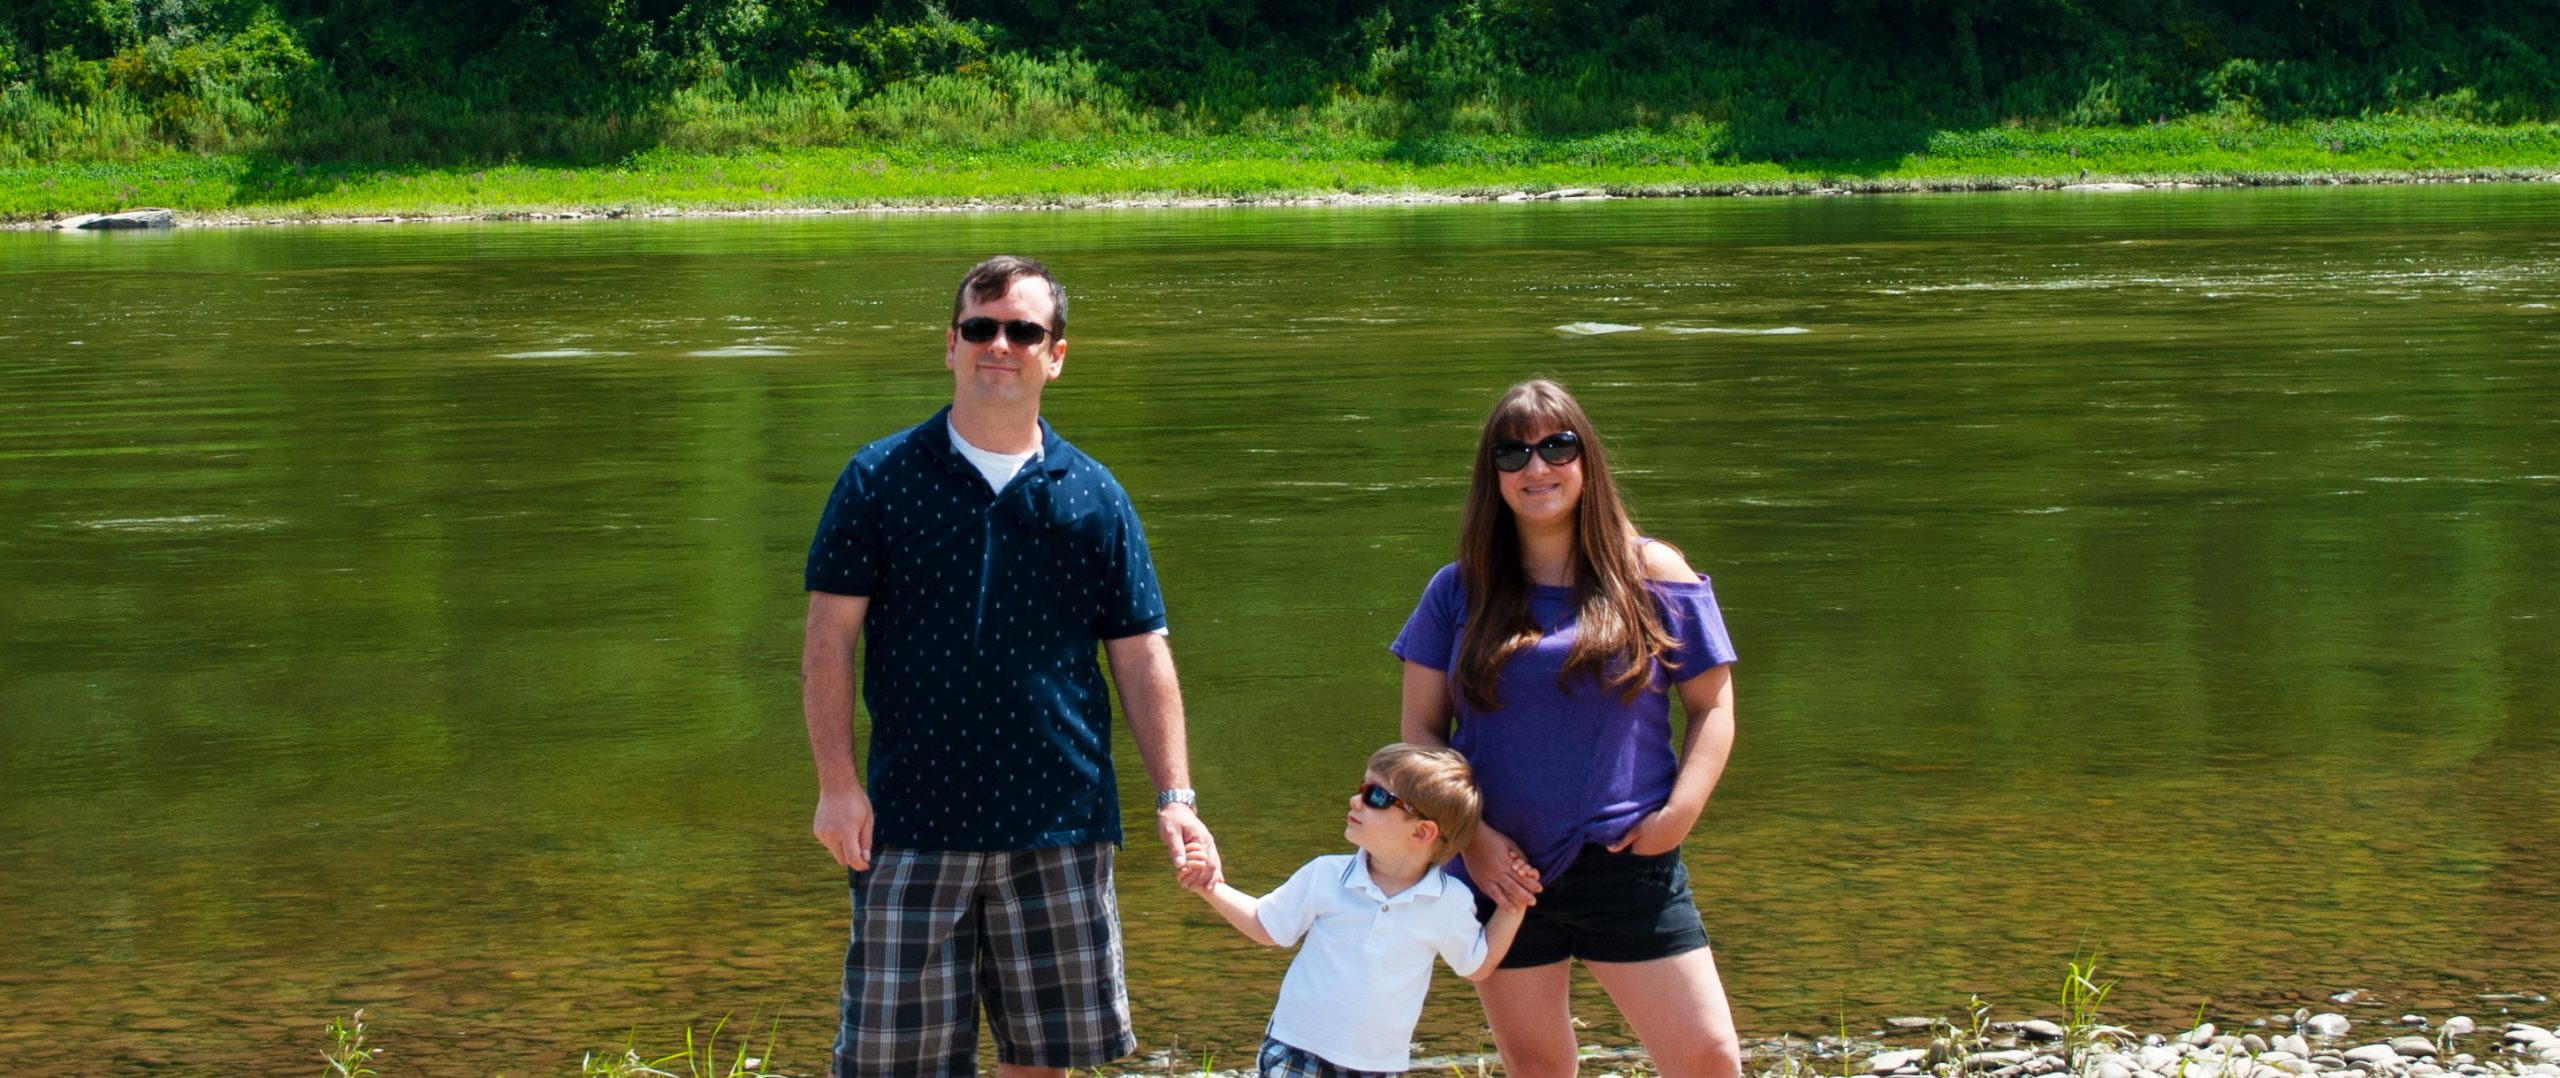 A family picture at the Susquehanna River in Pennsylvania